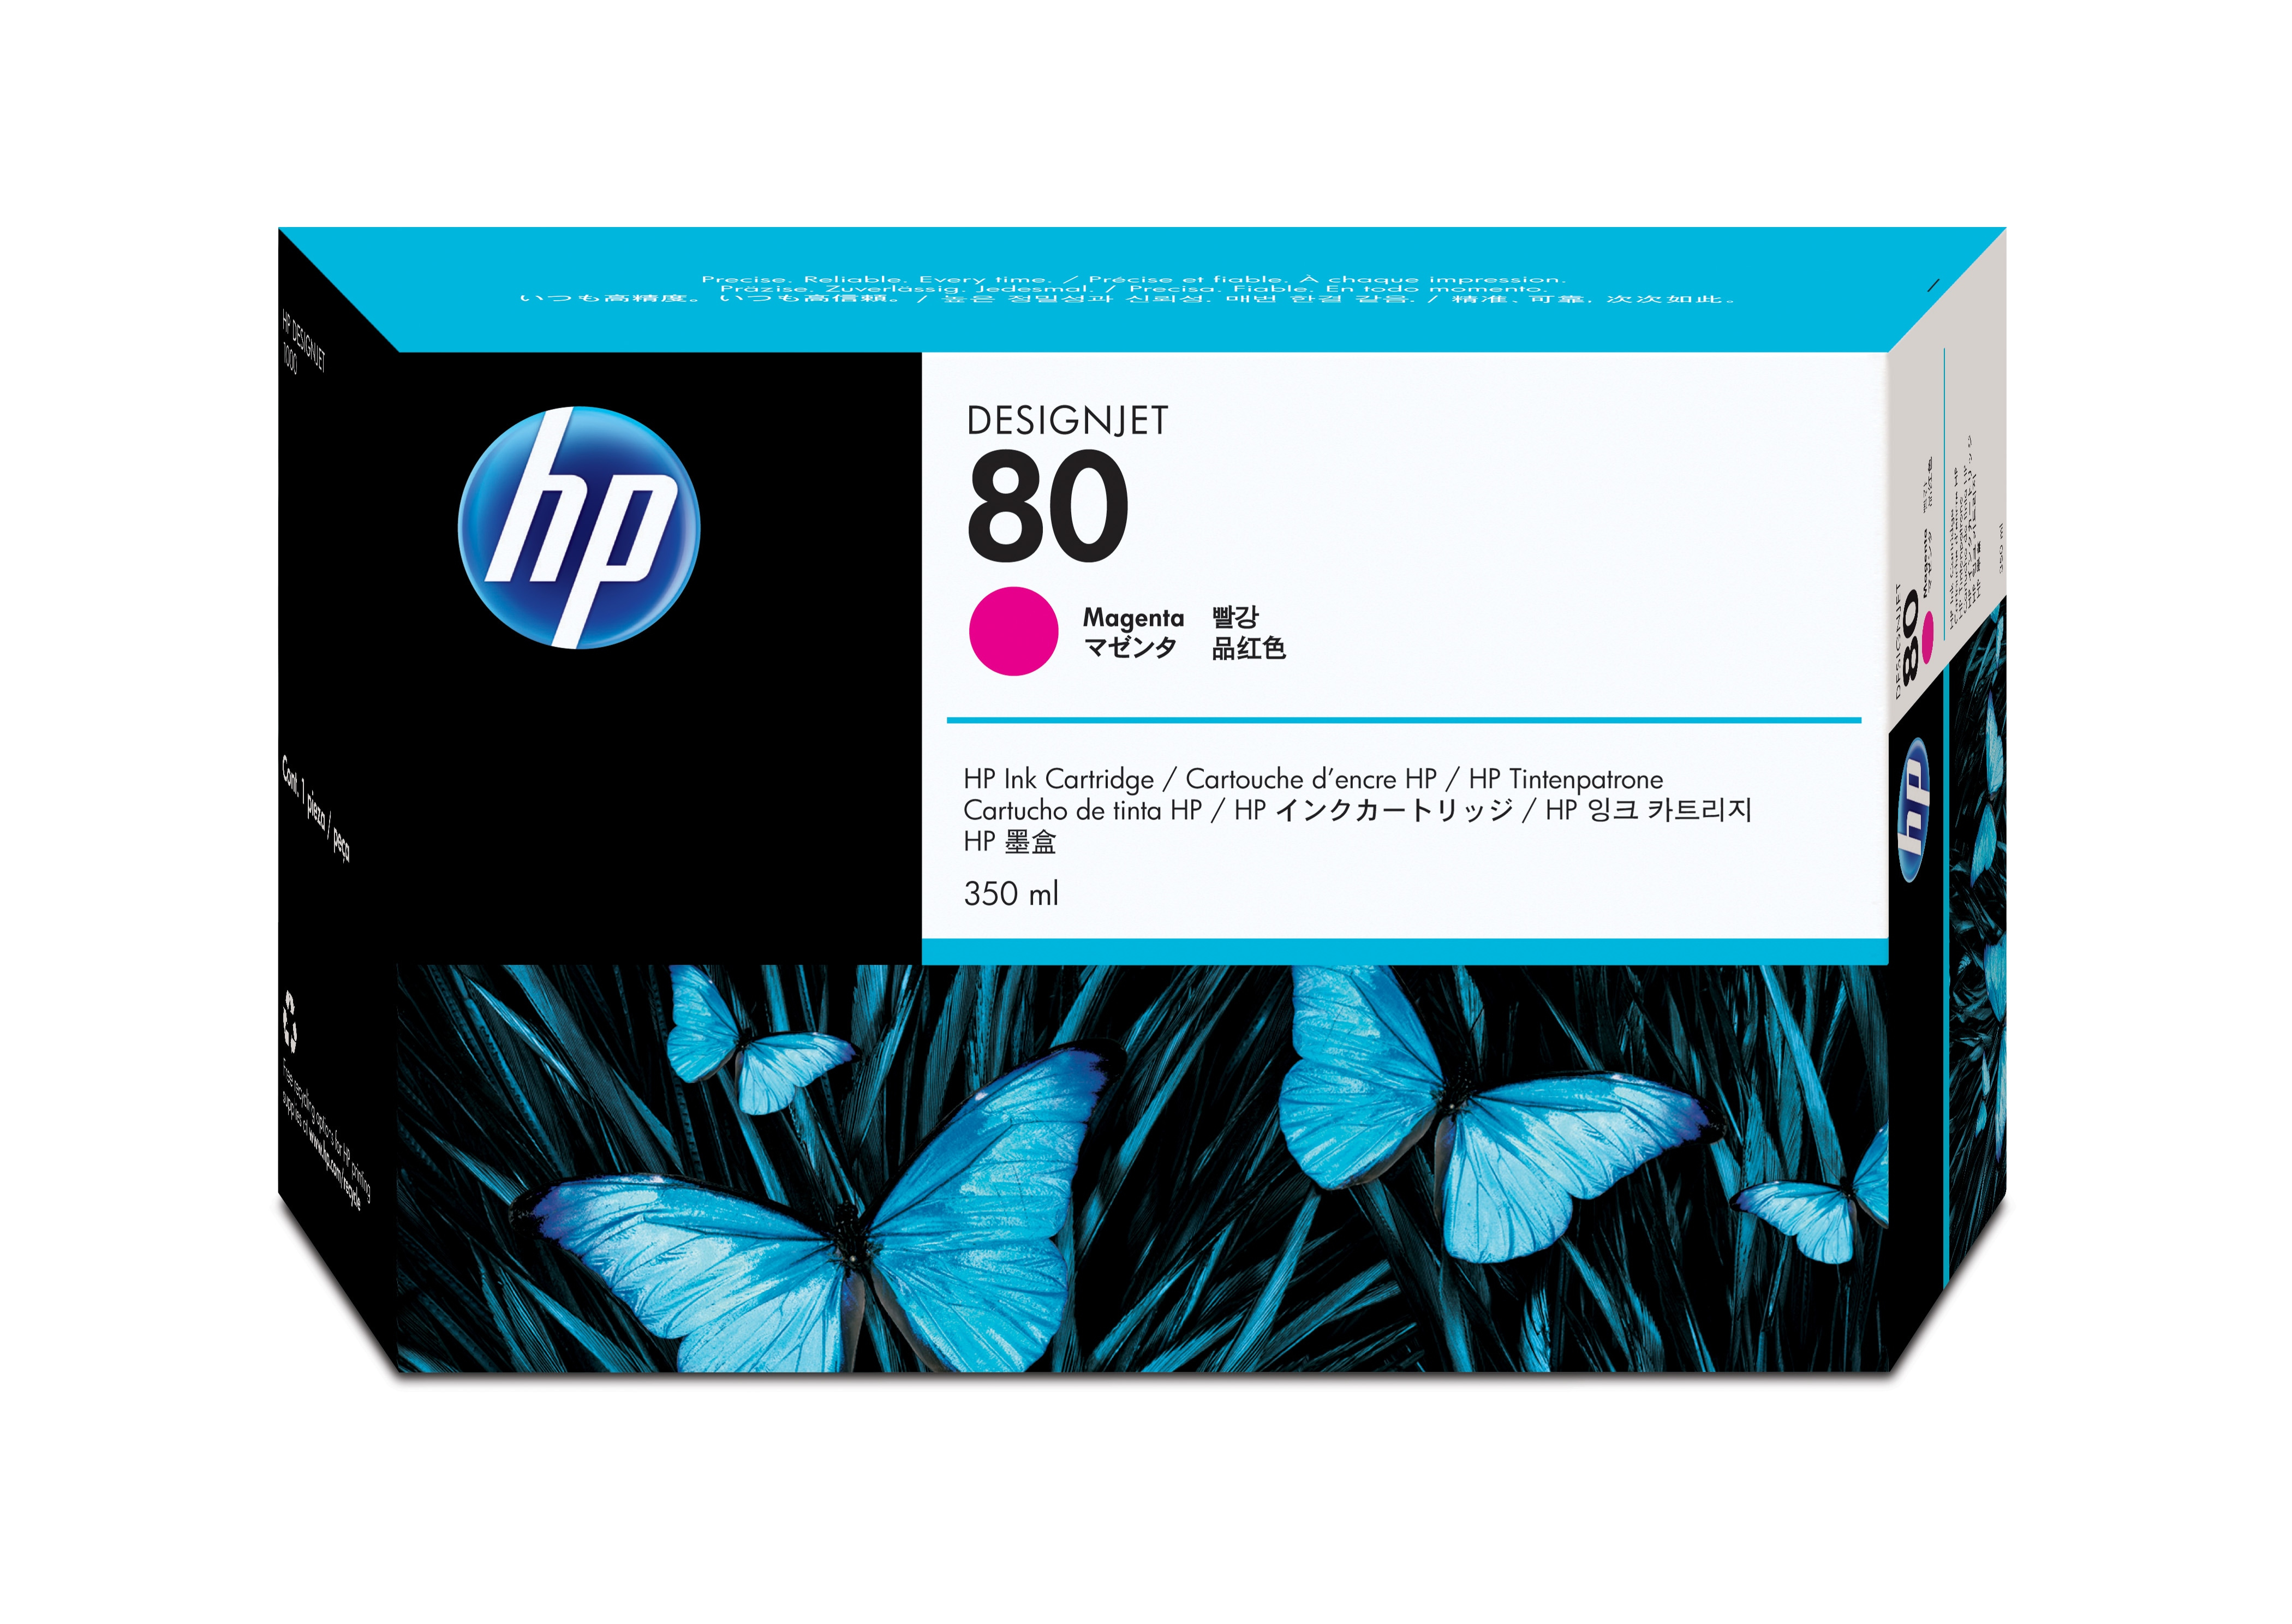 Hpc4847a       Hp 80 Magenta                  Hp No.80 Magenta Ink Cart (350for Designjet 1050c/1055cm     - UF01